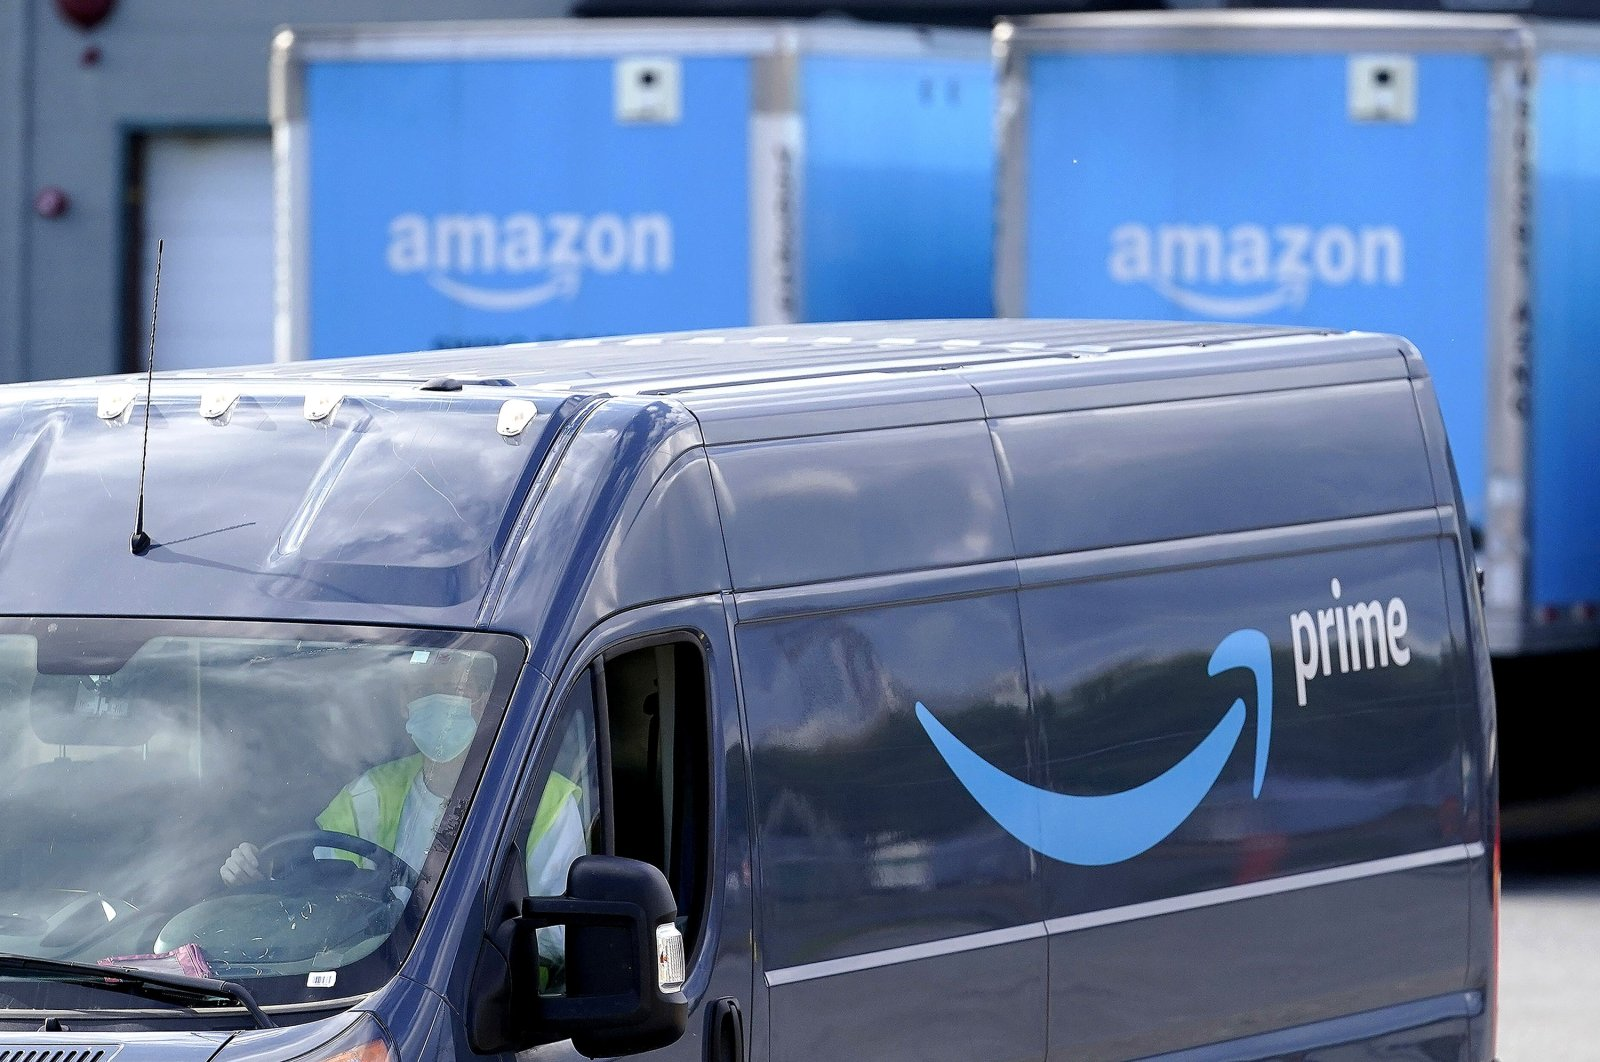 An Amazon Prime logo is seen on the side of a delivery van as it departs an Amazon Warehouse location in Dedham, Mass., U.S., Oct. 1, 2020. (AP Photo)